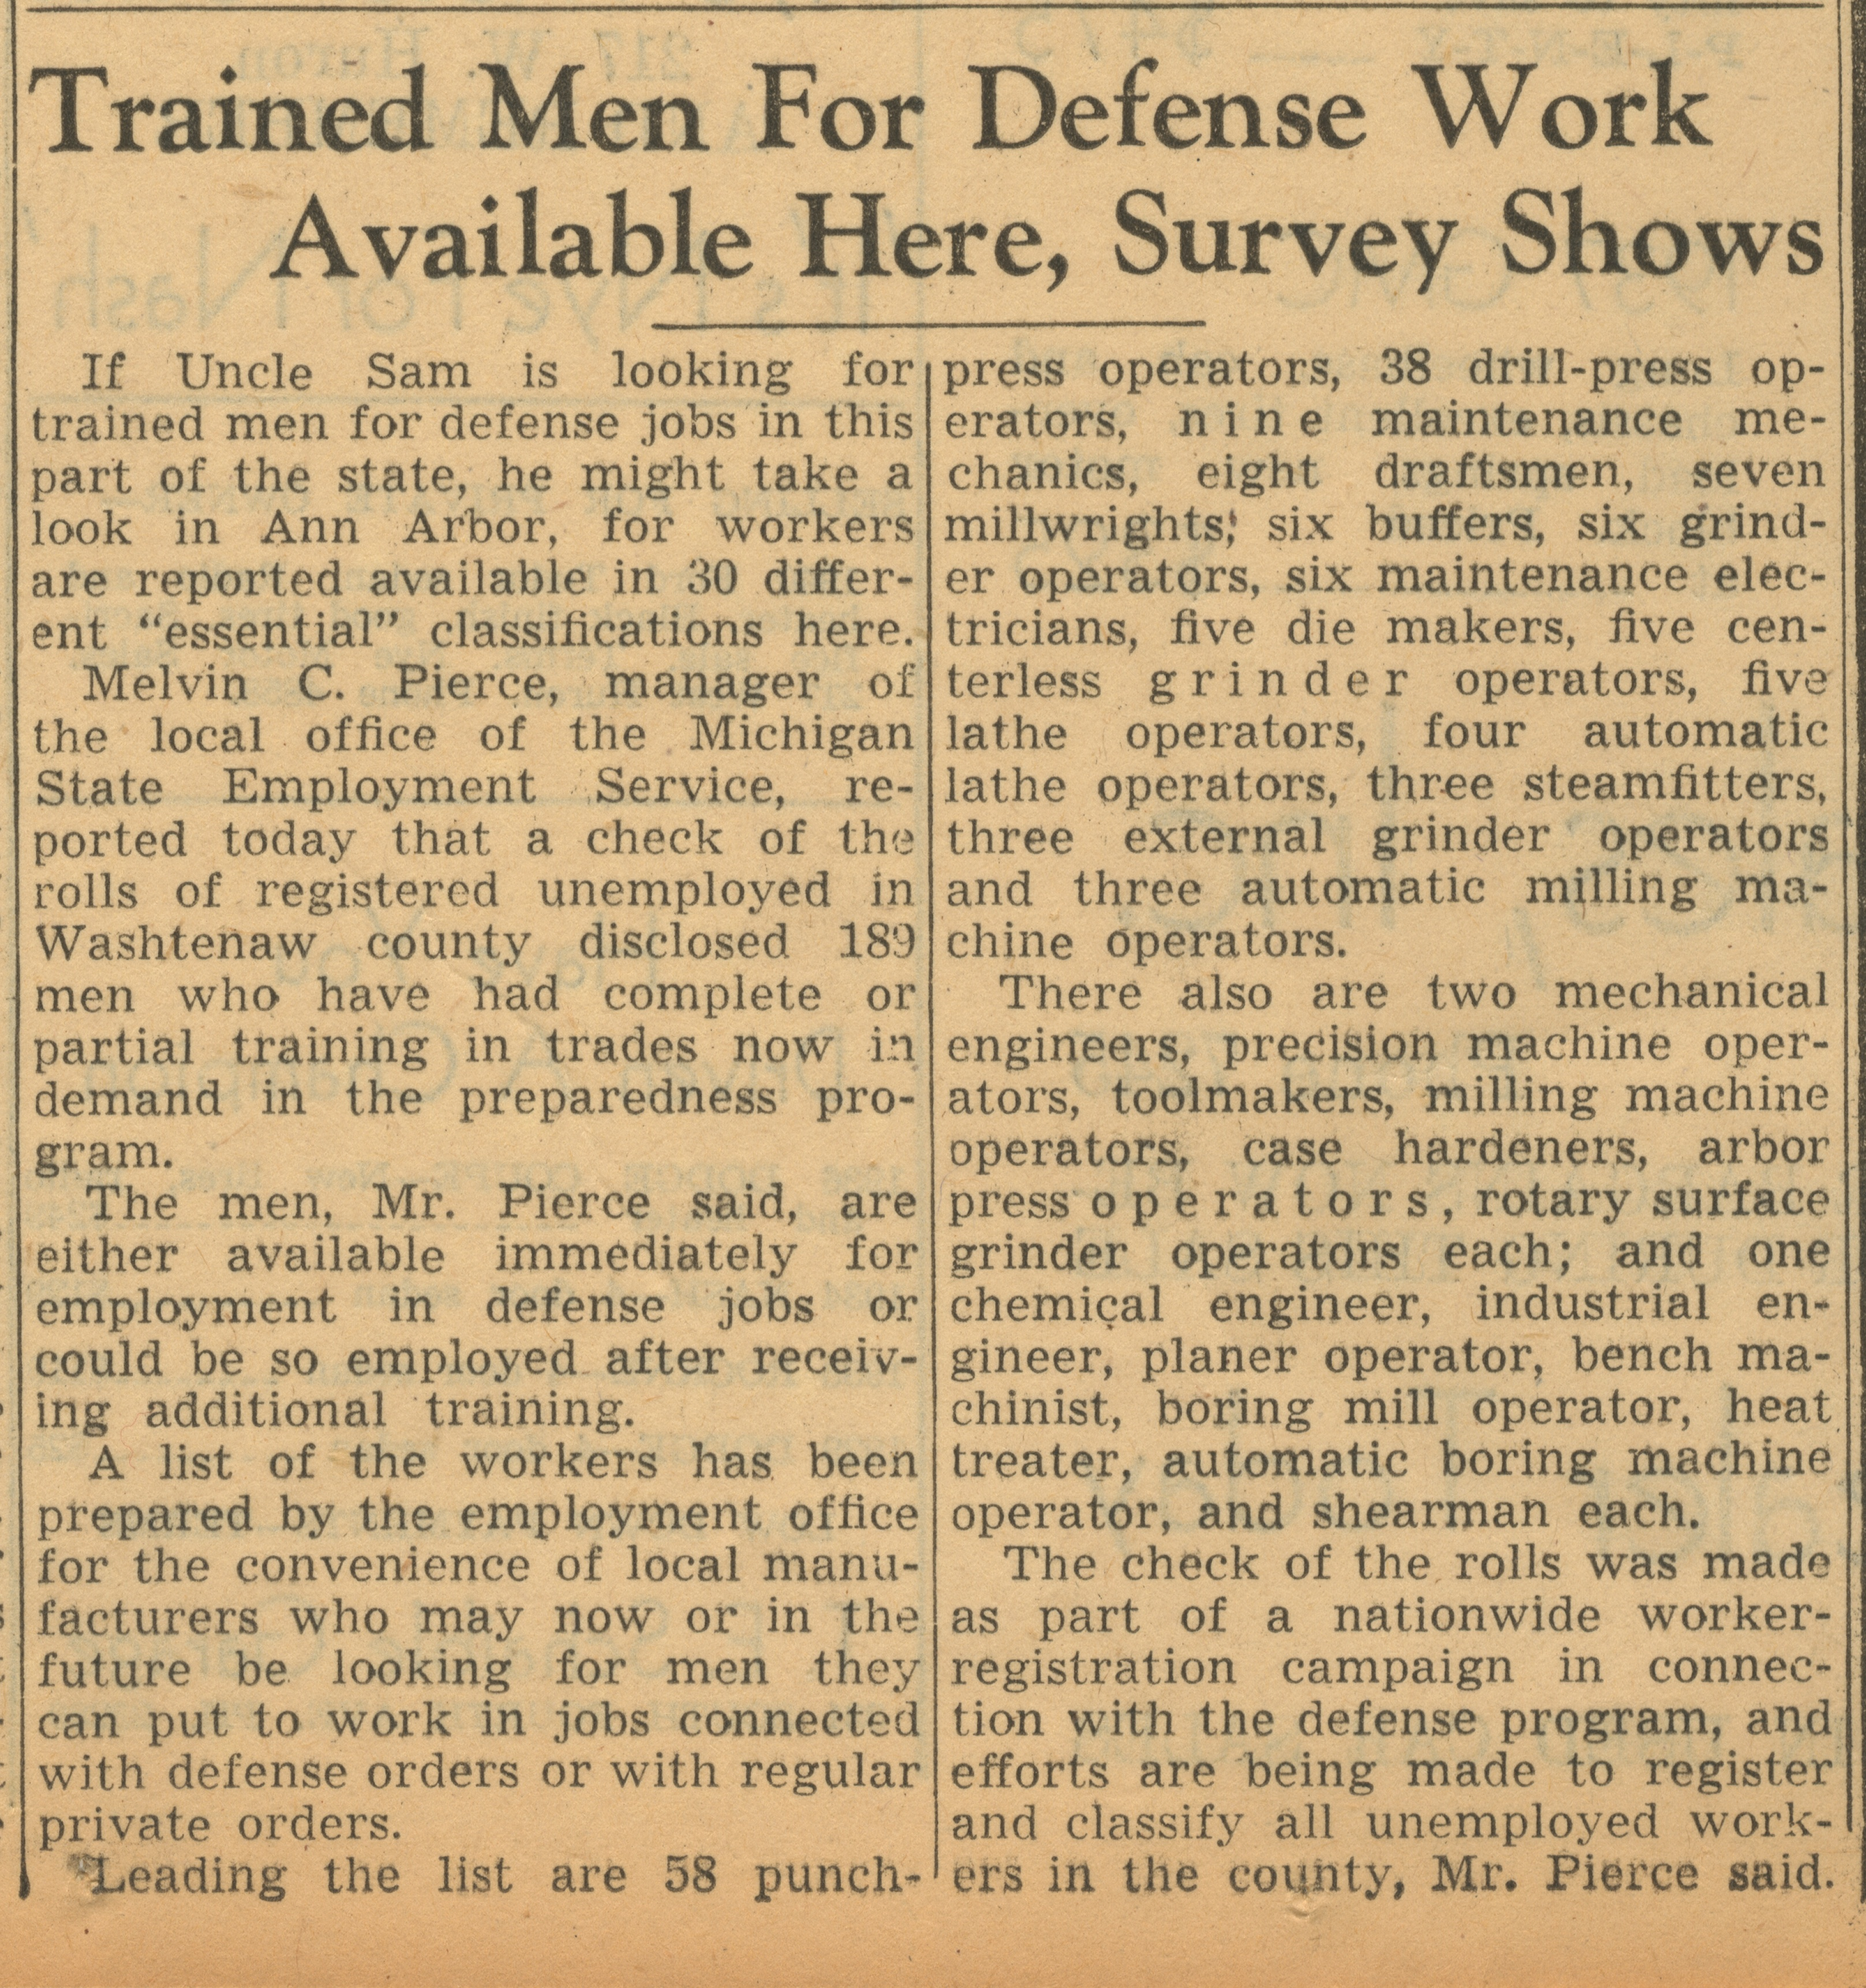 Trained Men For Defense Work Available Here, Survey Shows image